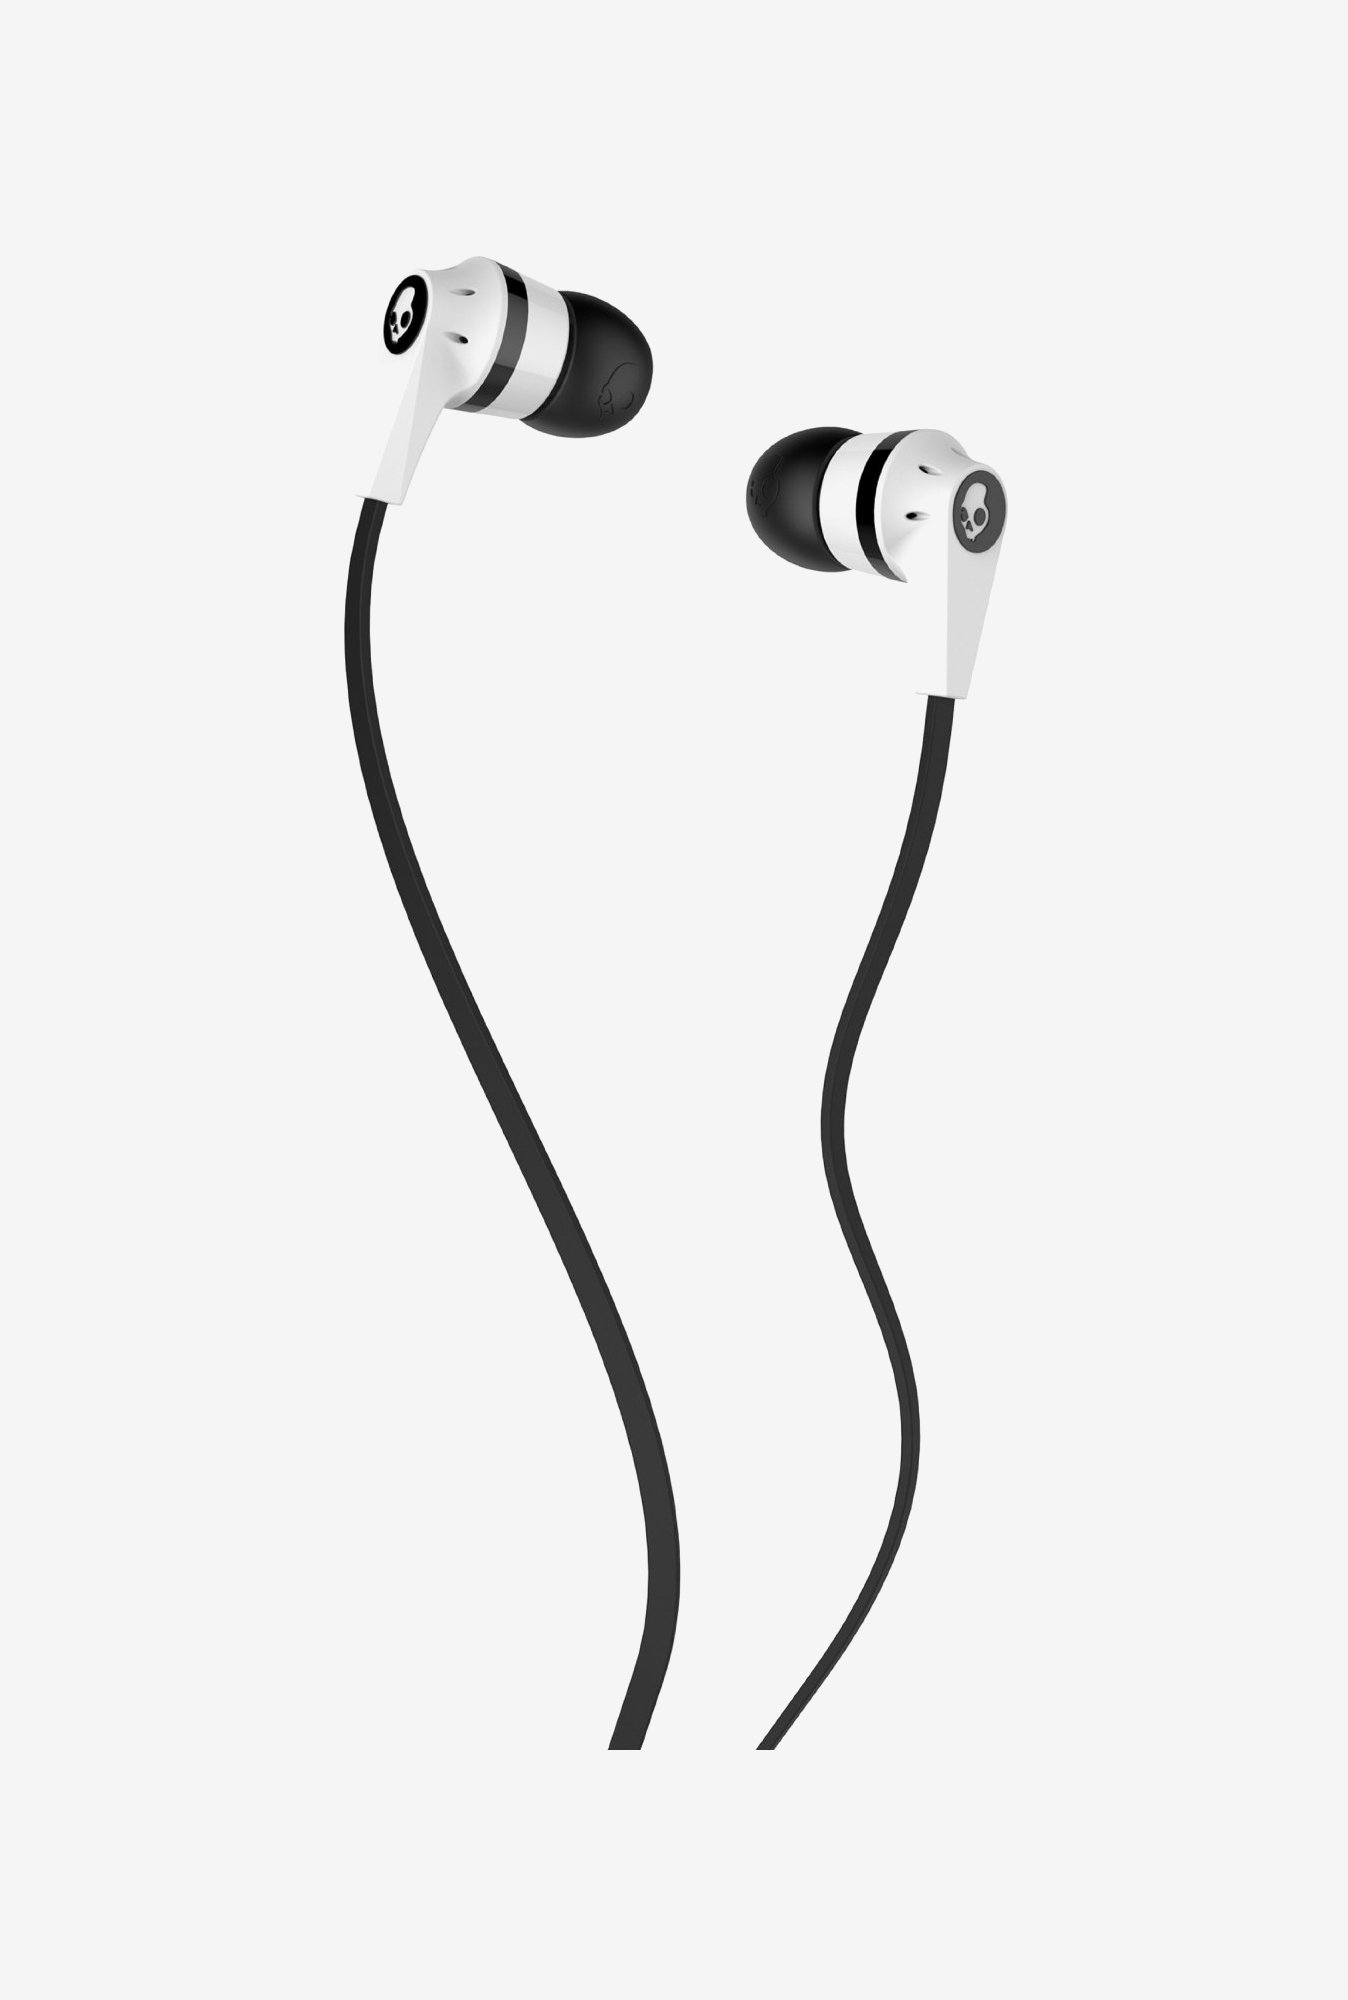 Skullcandy Inkd 2.0 S2IKFZ-074 Headphone White & Black